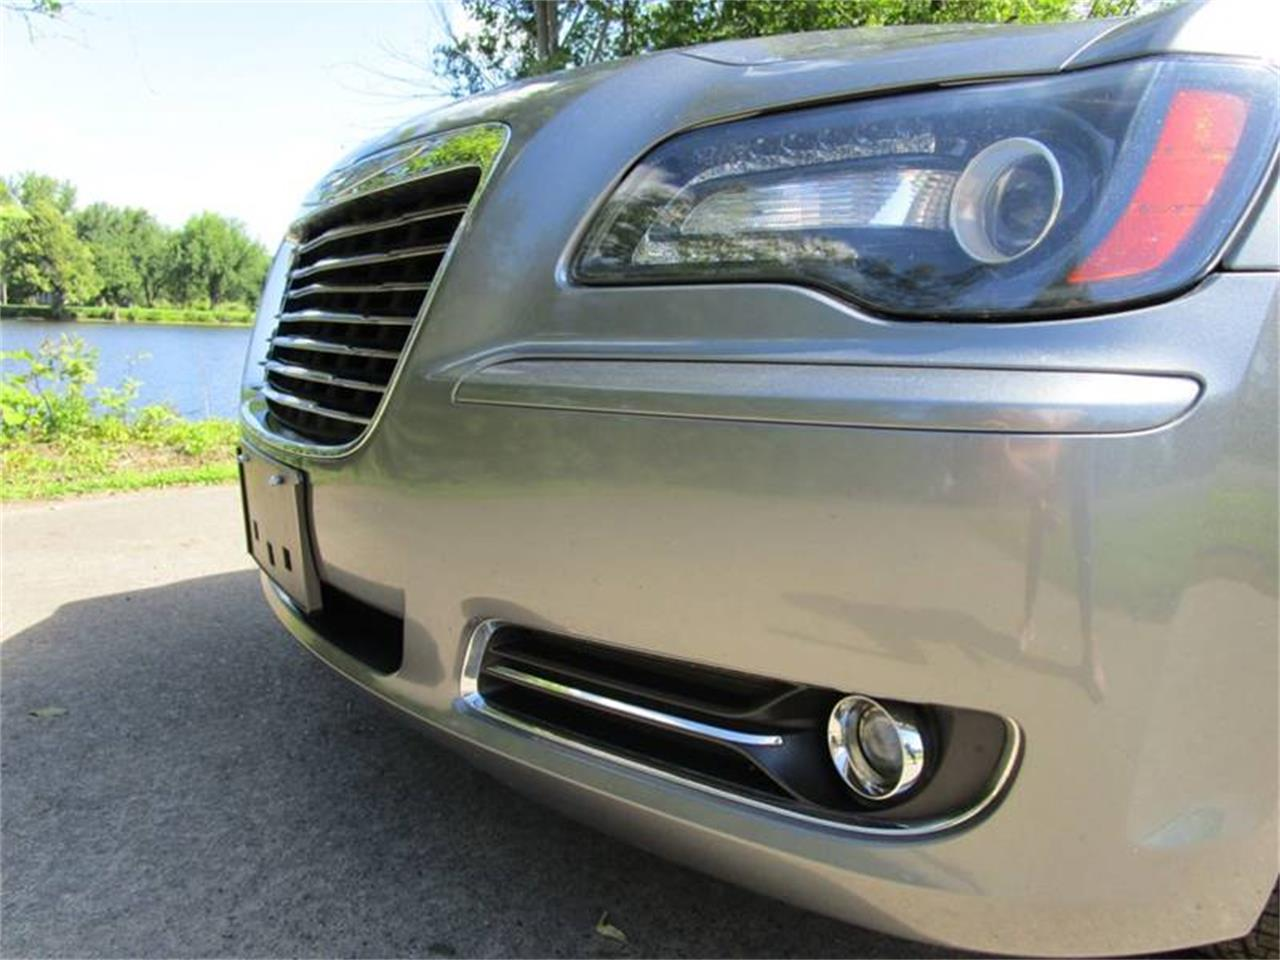 2012 Chrysler 300 for sale in Stanley, WI – photo 8